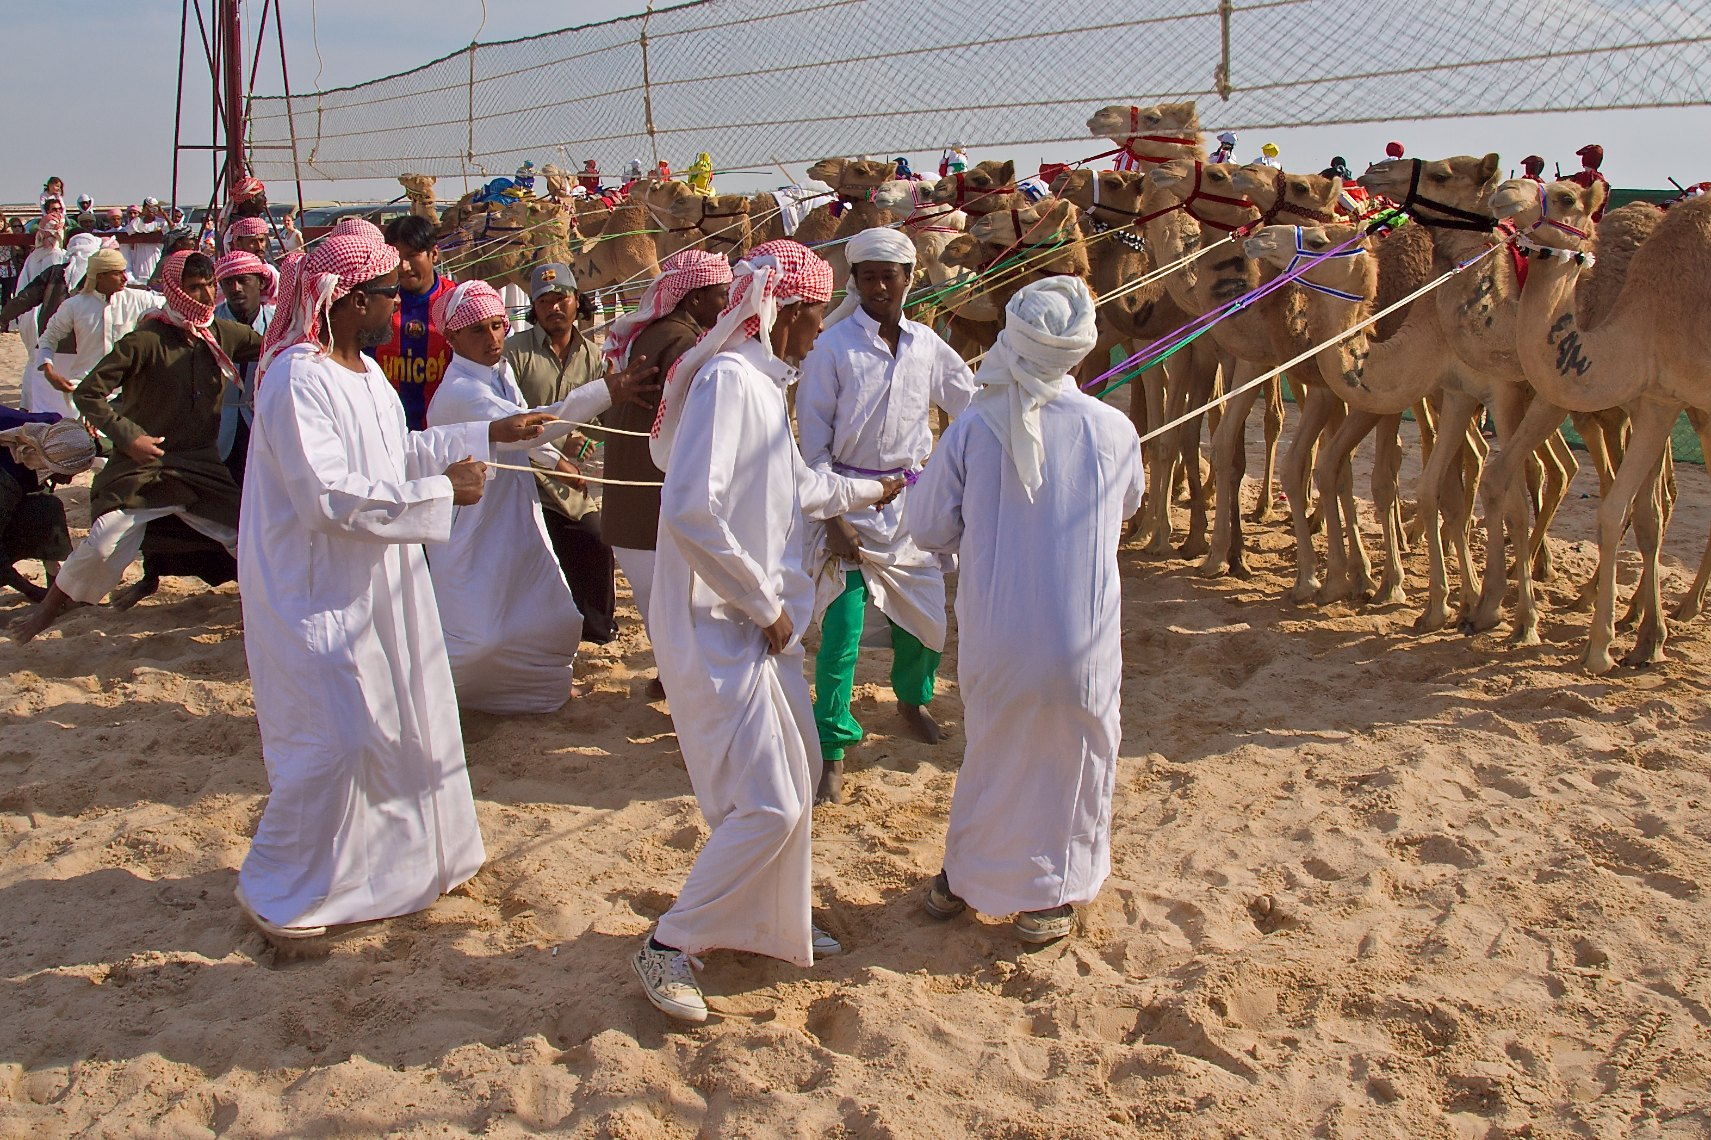 Qatar Al Shahaniya camel race preparing for  the start 4